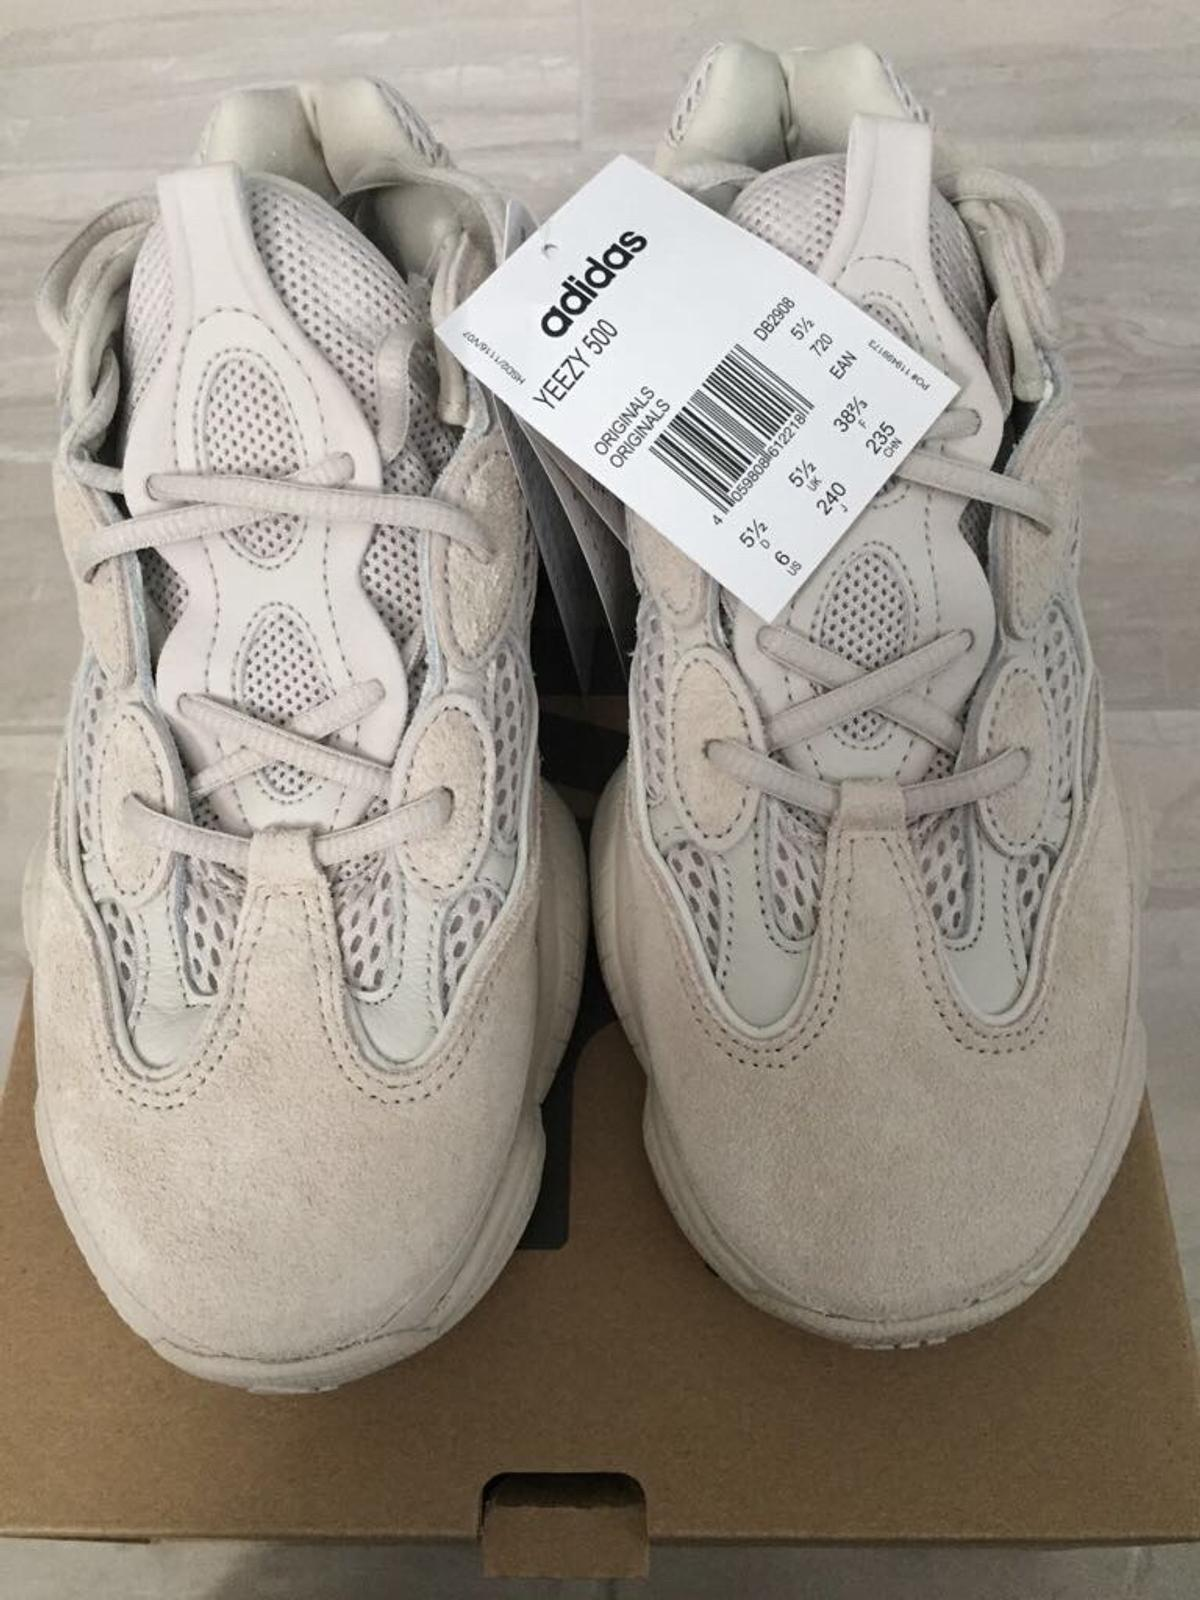 new product 65a72 2107d Yeezy 500 desert rat - Blush - UK 5.5